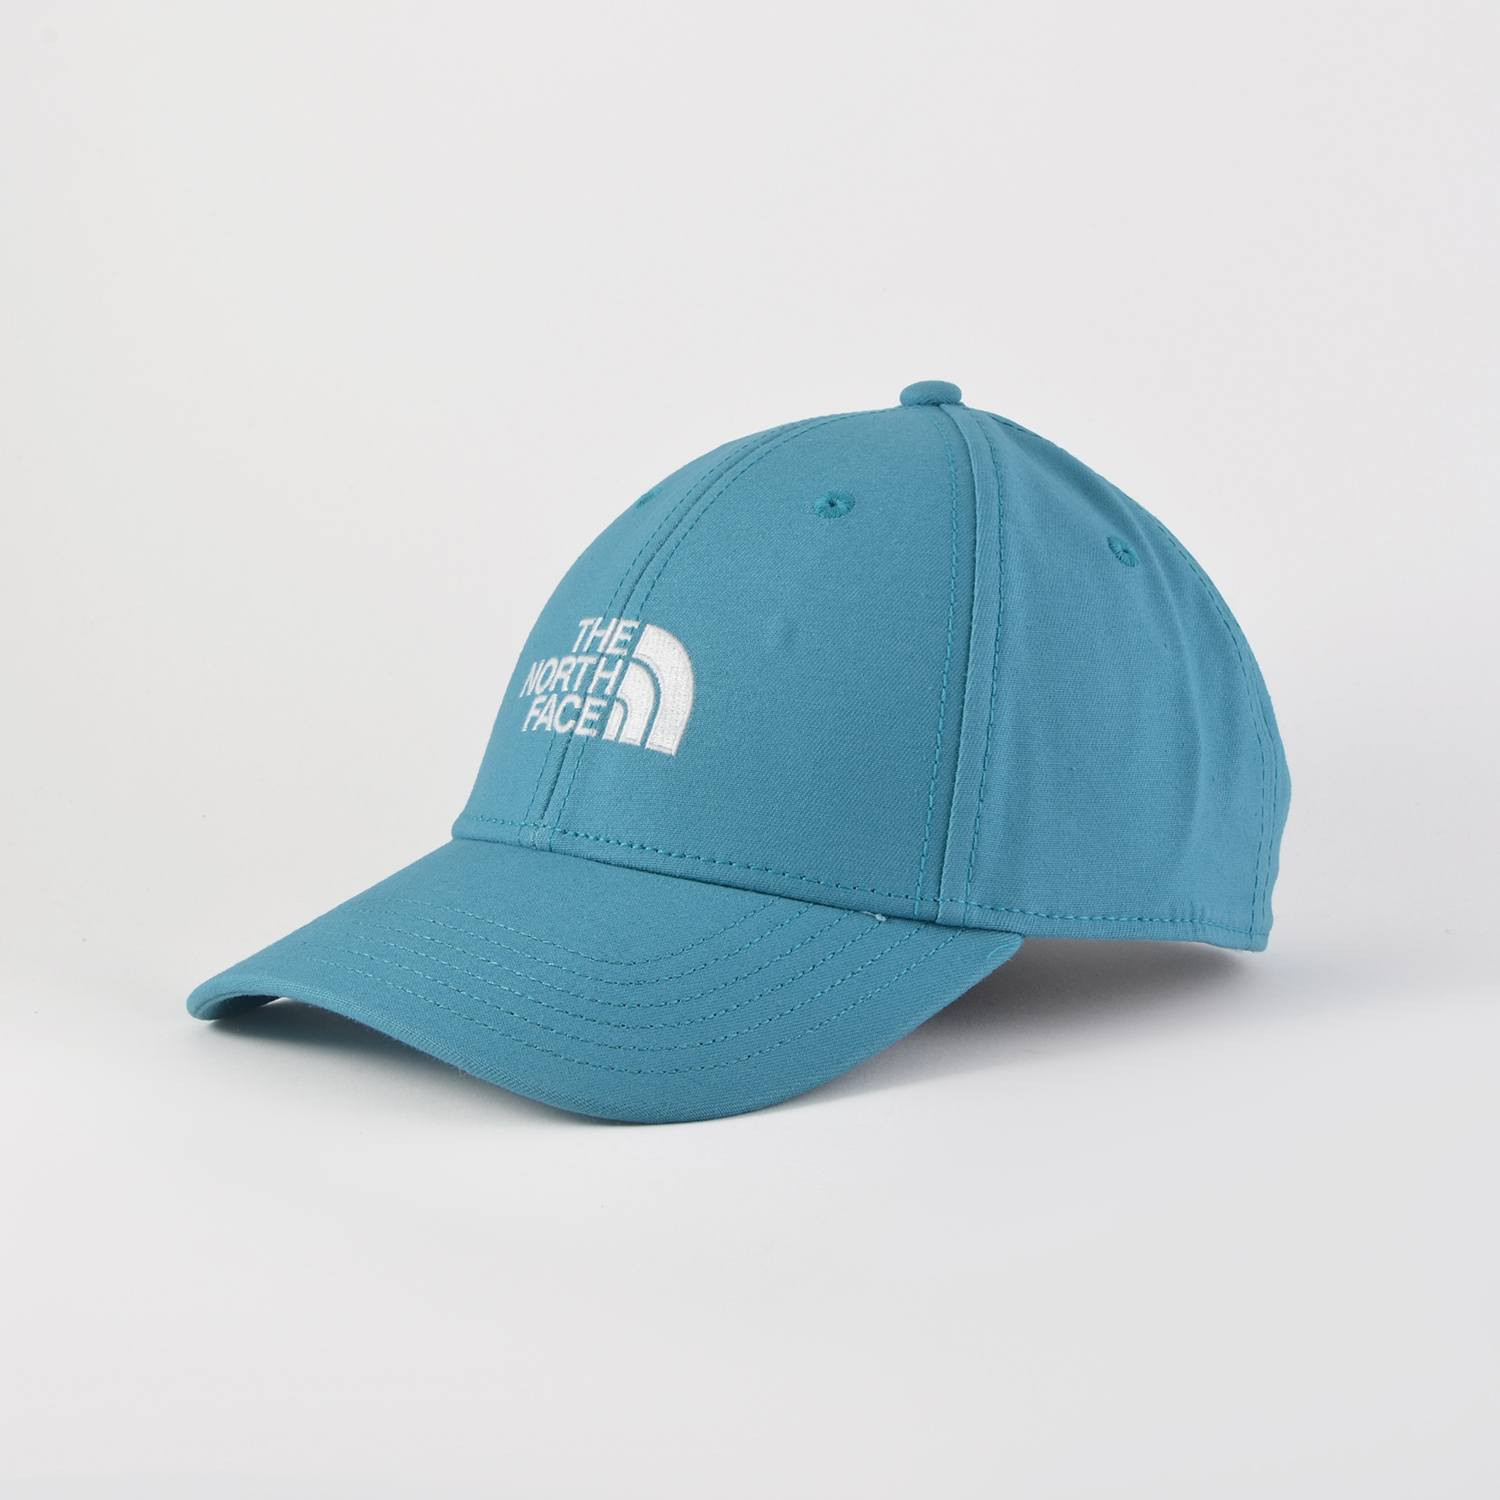 THE NORTH FACE 66 Classic Hat (9000027934_38516)